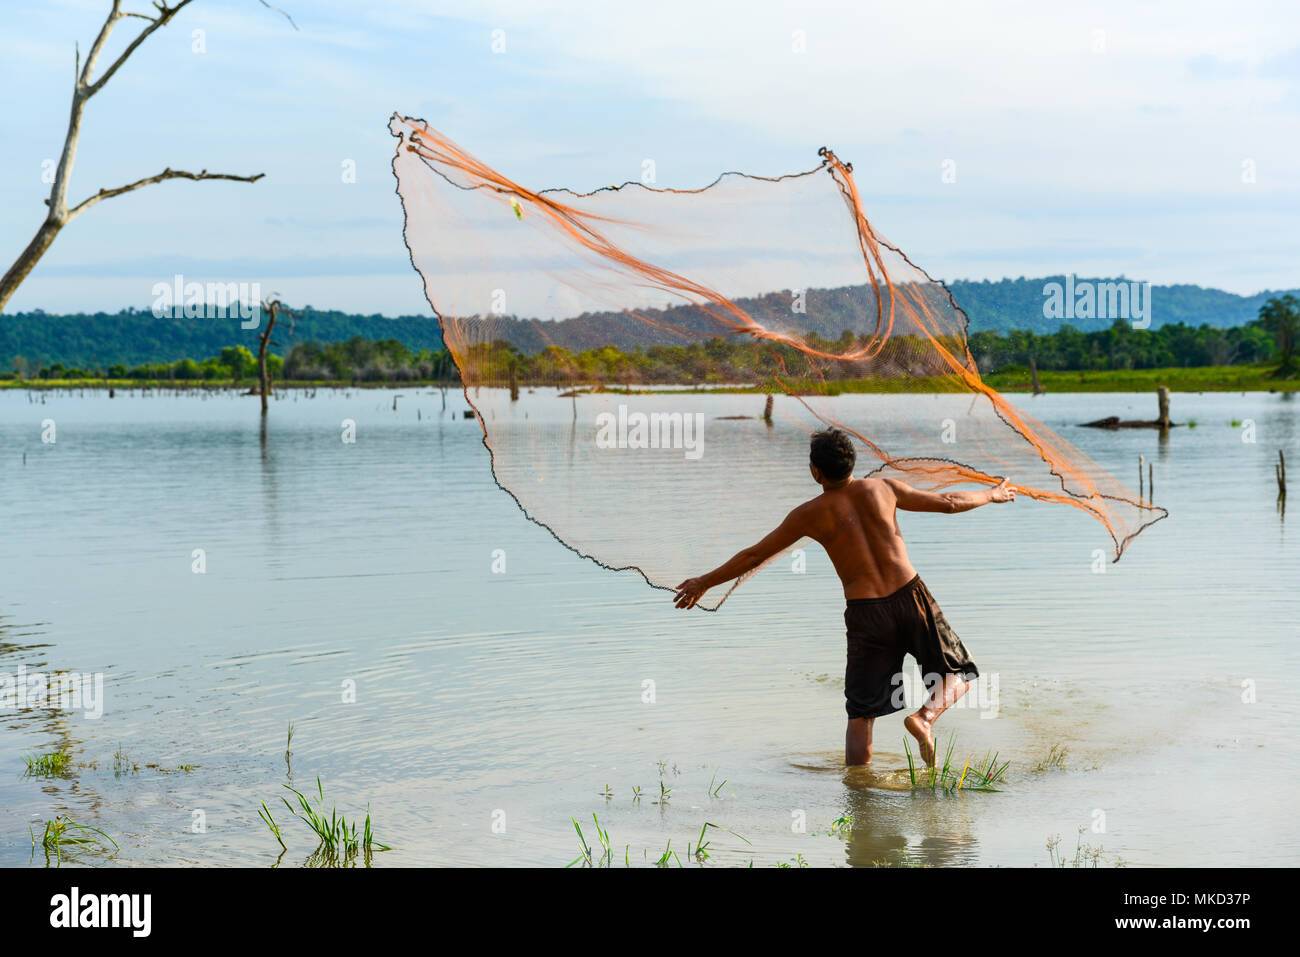 Chachoengsao, Thailand - December 8, 2011, Fisherman  casting traditional fishing net to fish in rural swamp in Chachoengsao, Thailand - Stock Image